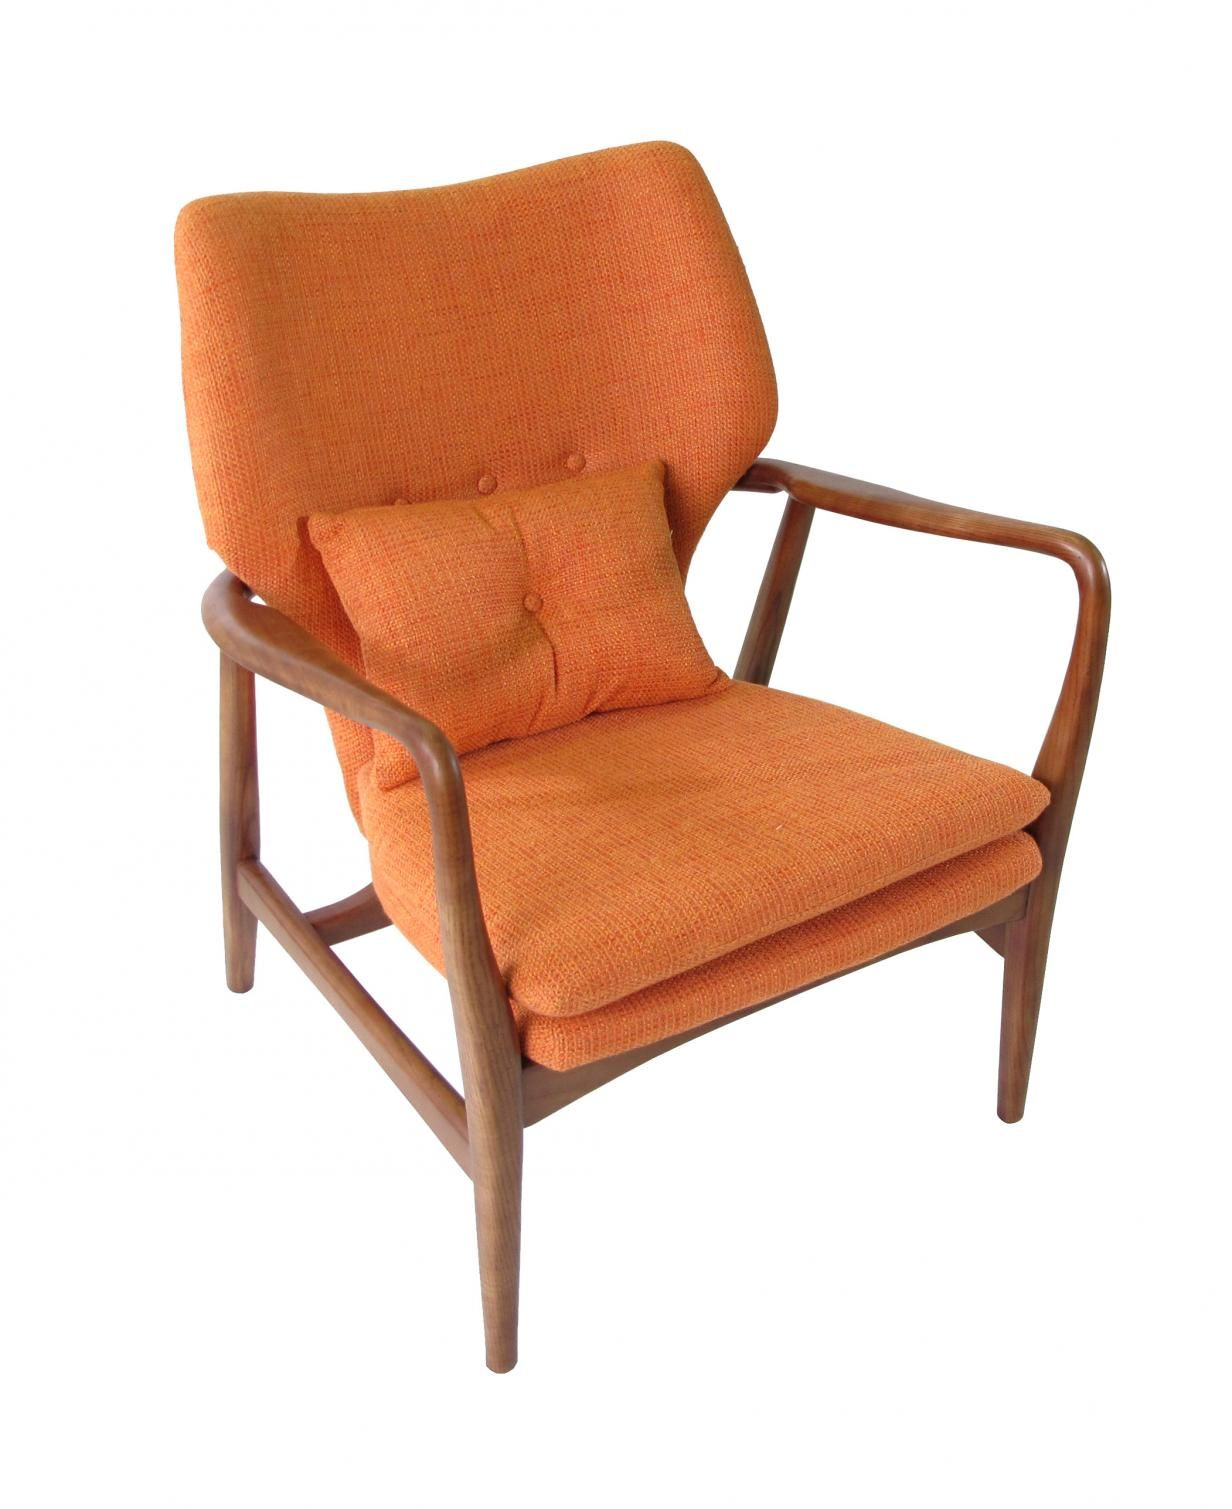 Inspired By Danish Design, The Mid Century Helsinki Chair Offer Nostalgic  Modernity To Any Space. Use The Large Chair And Foot Stool As A Chic Lazy  Boy Or ...